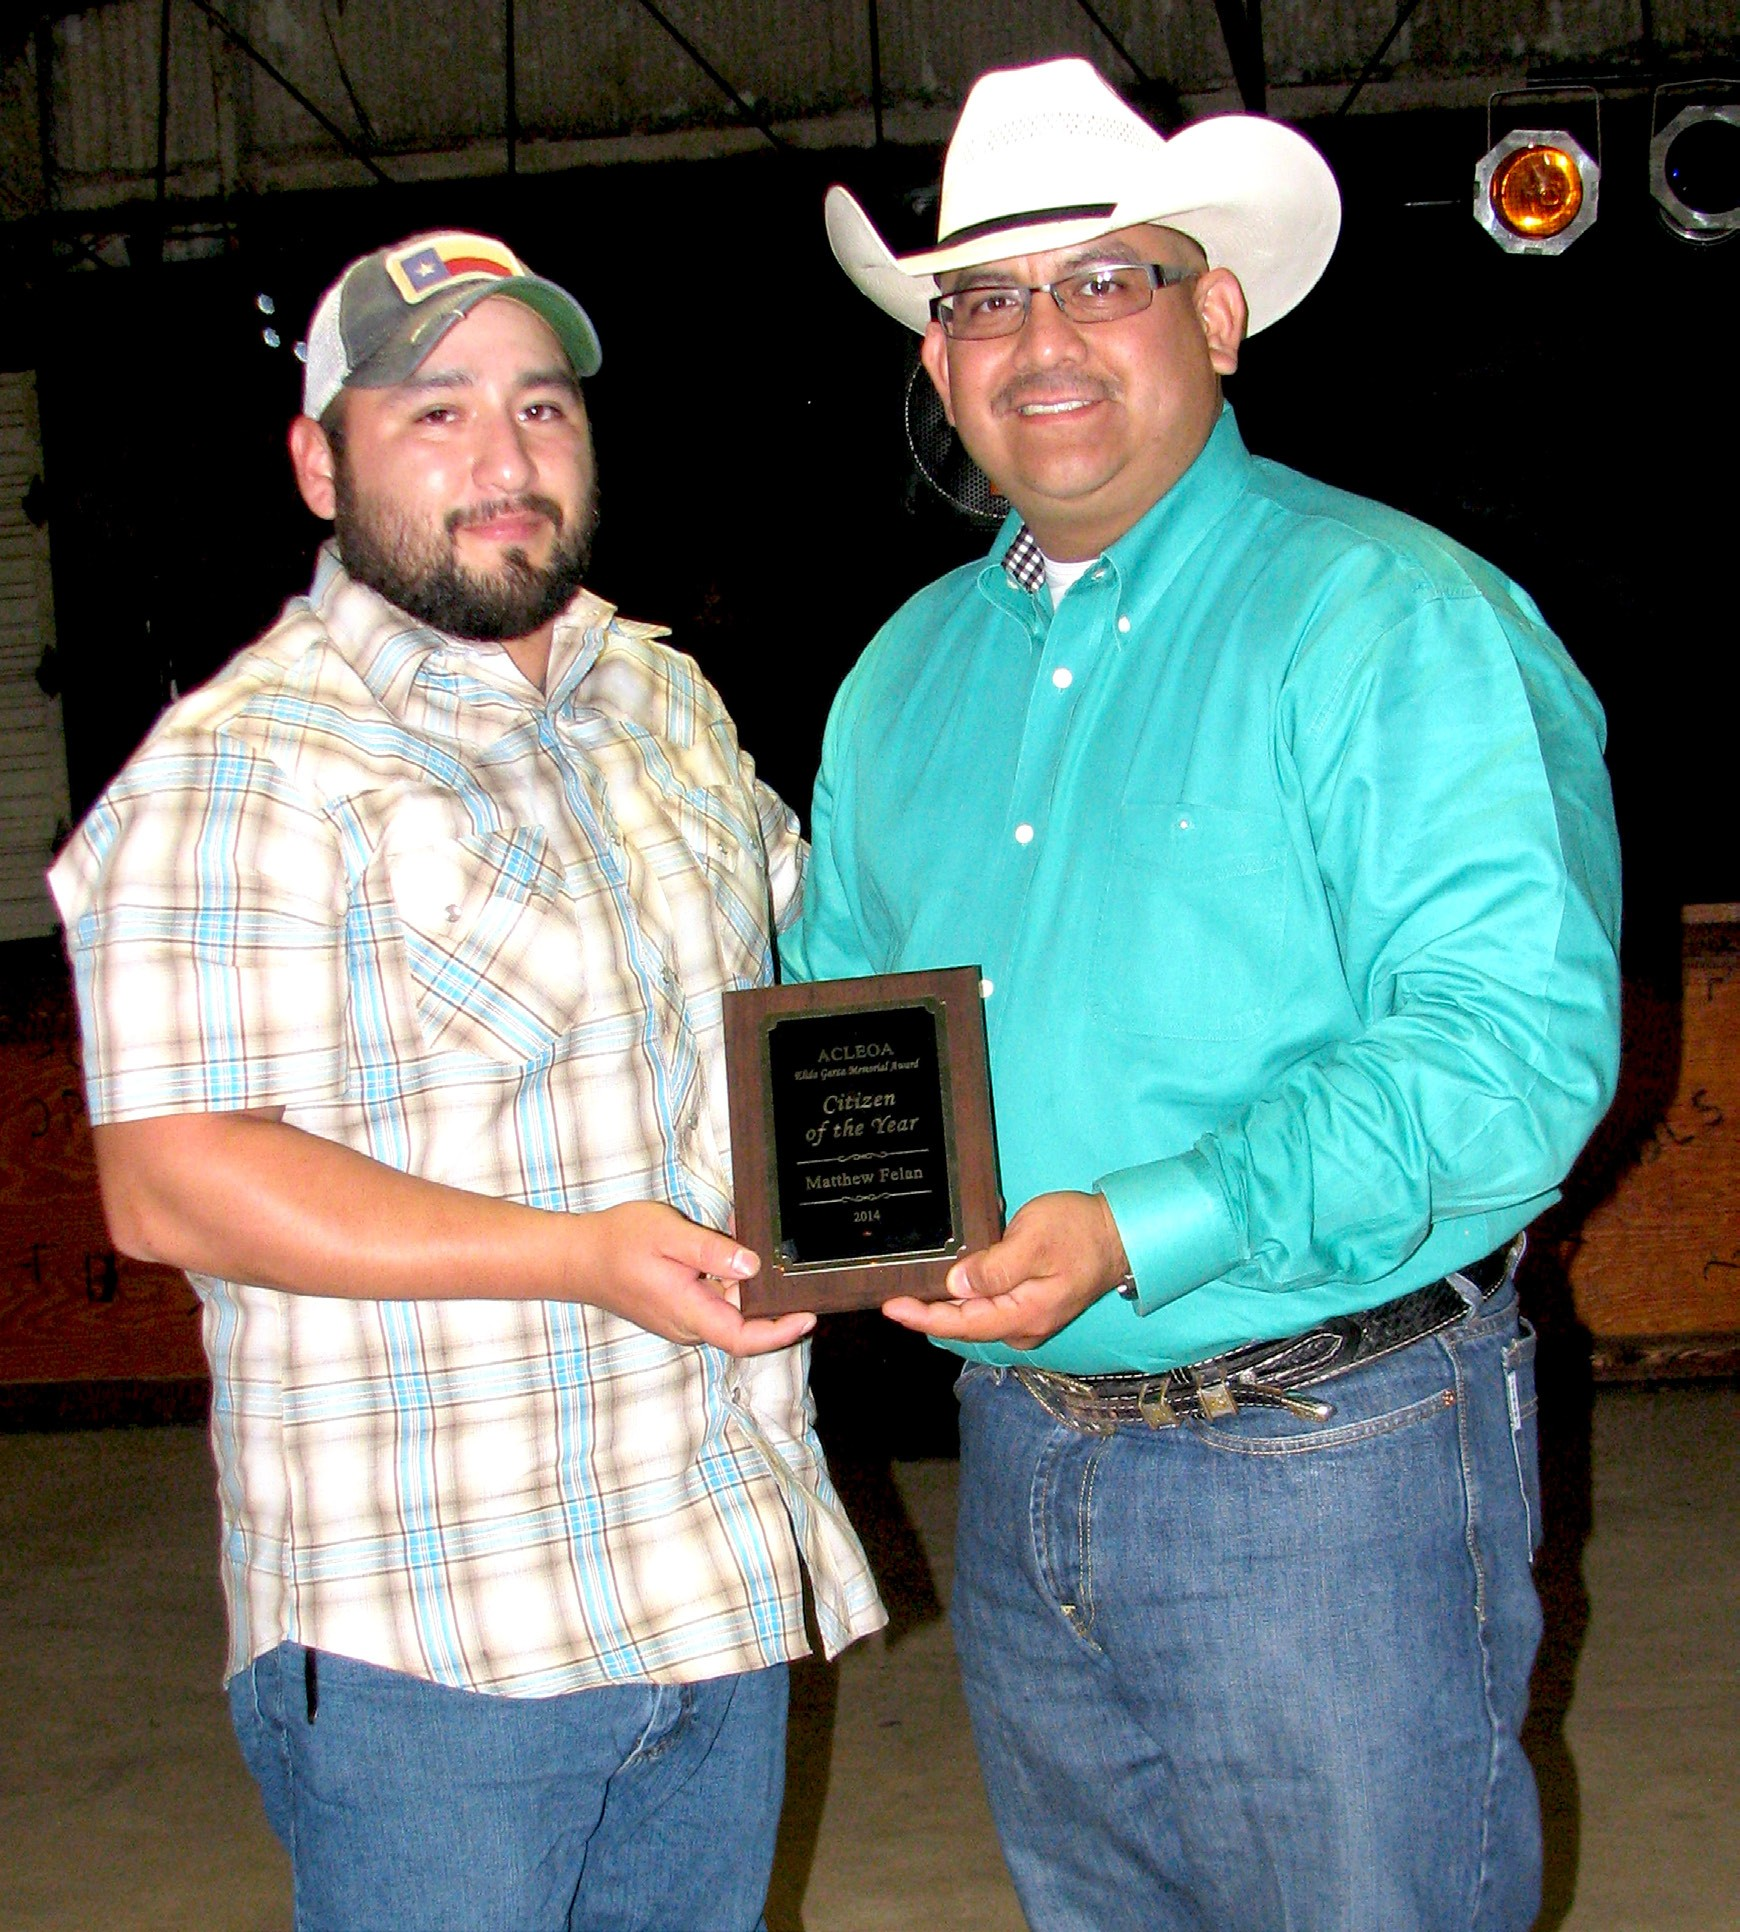 Matthew Felan (left) was awarded the Citizen of the Year at the annual Atascosa County Law Enforcement Officer Association banquet held Saturday, June 13. ACLEOA President Albert Garza presented the plaque of appreciation.